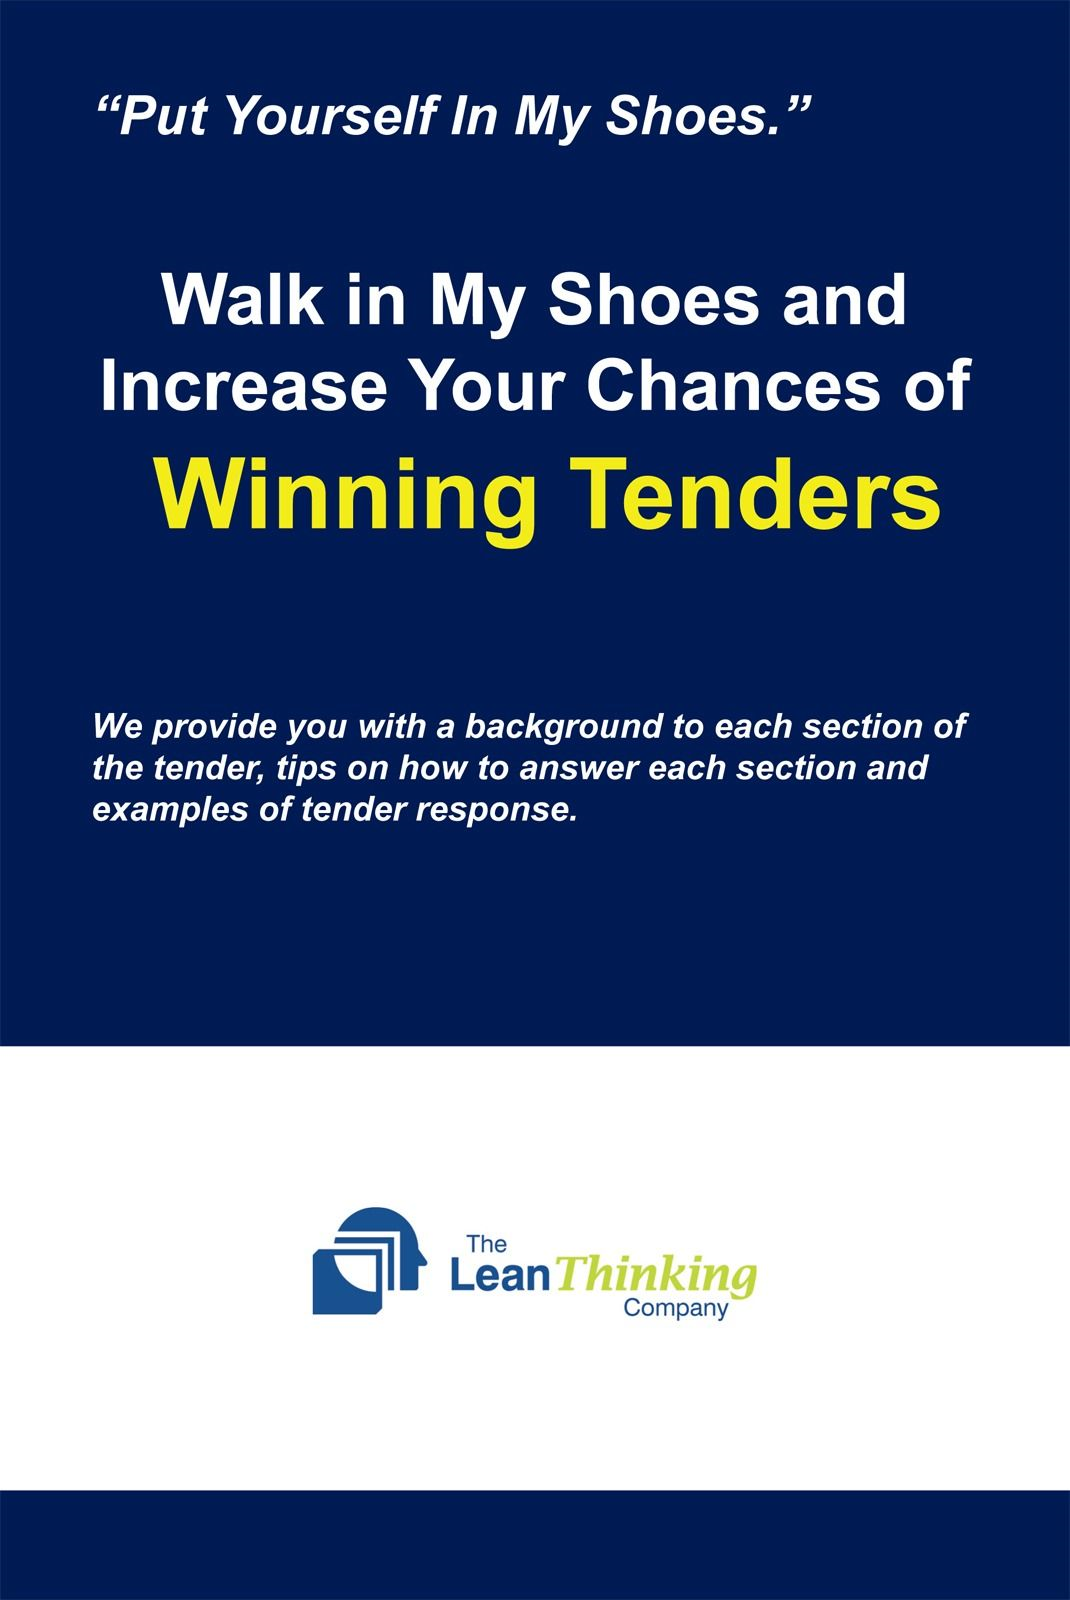 Walk in My Shoes and Increase Your Chances of Winning Tenders